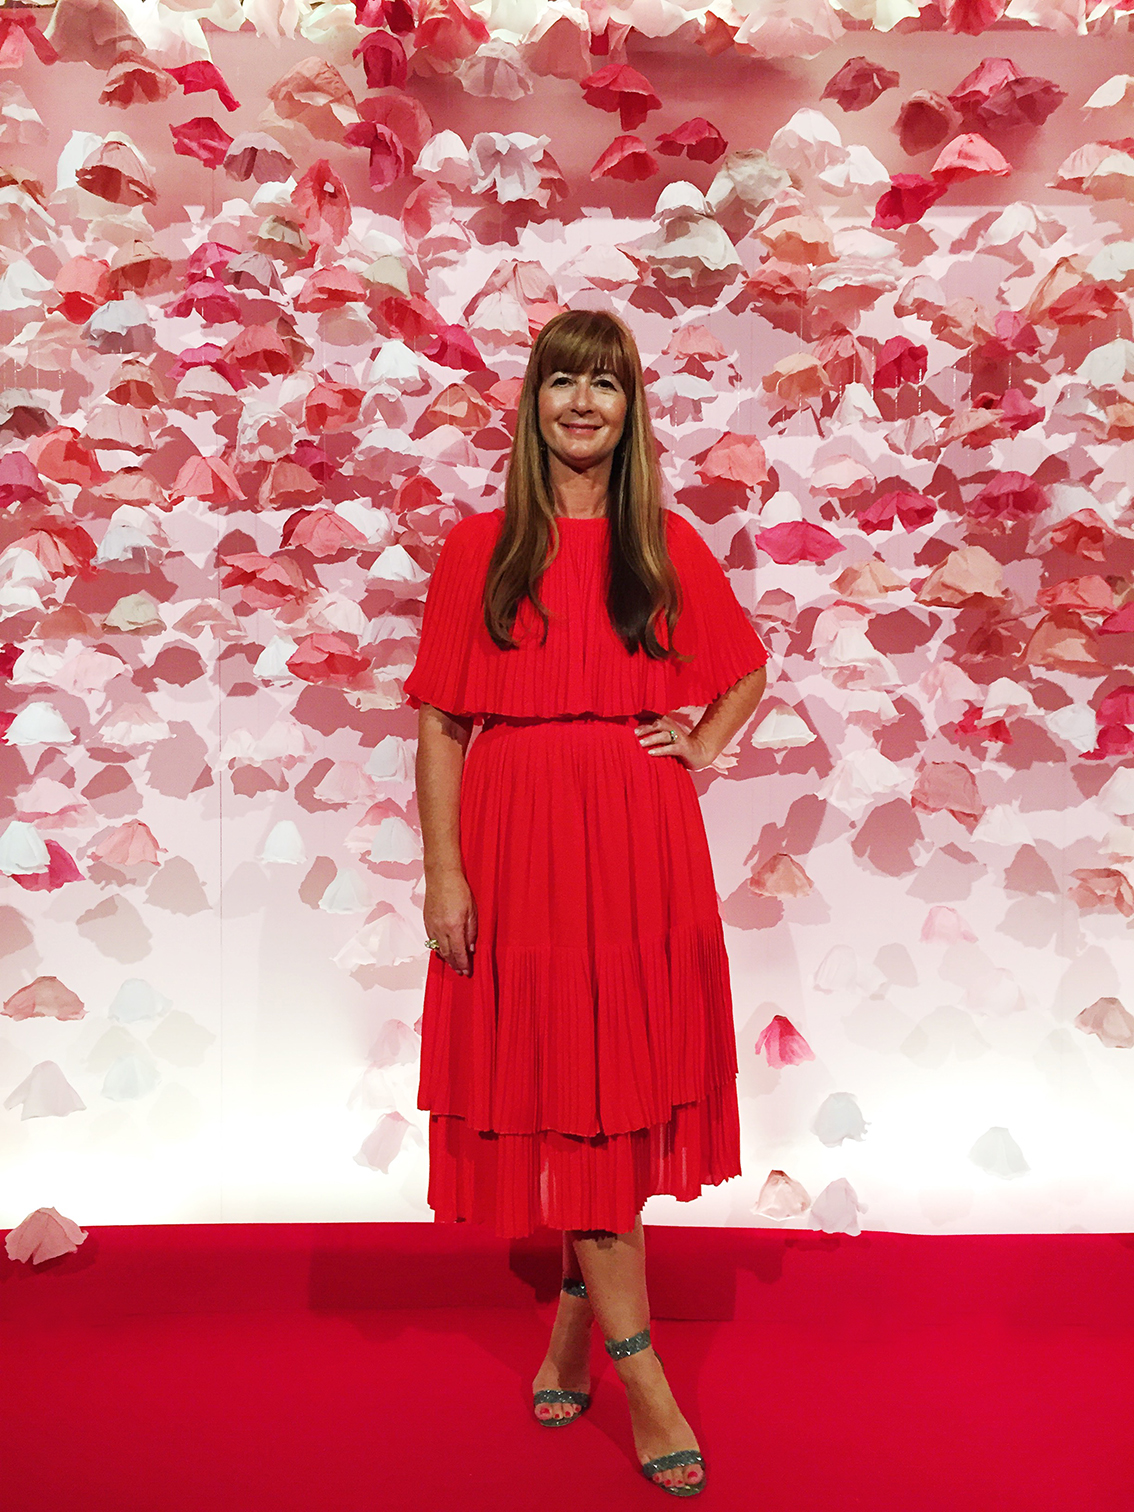 Hello Sandwich for Kate Spade FLoral Backdrop Deborah Llyod